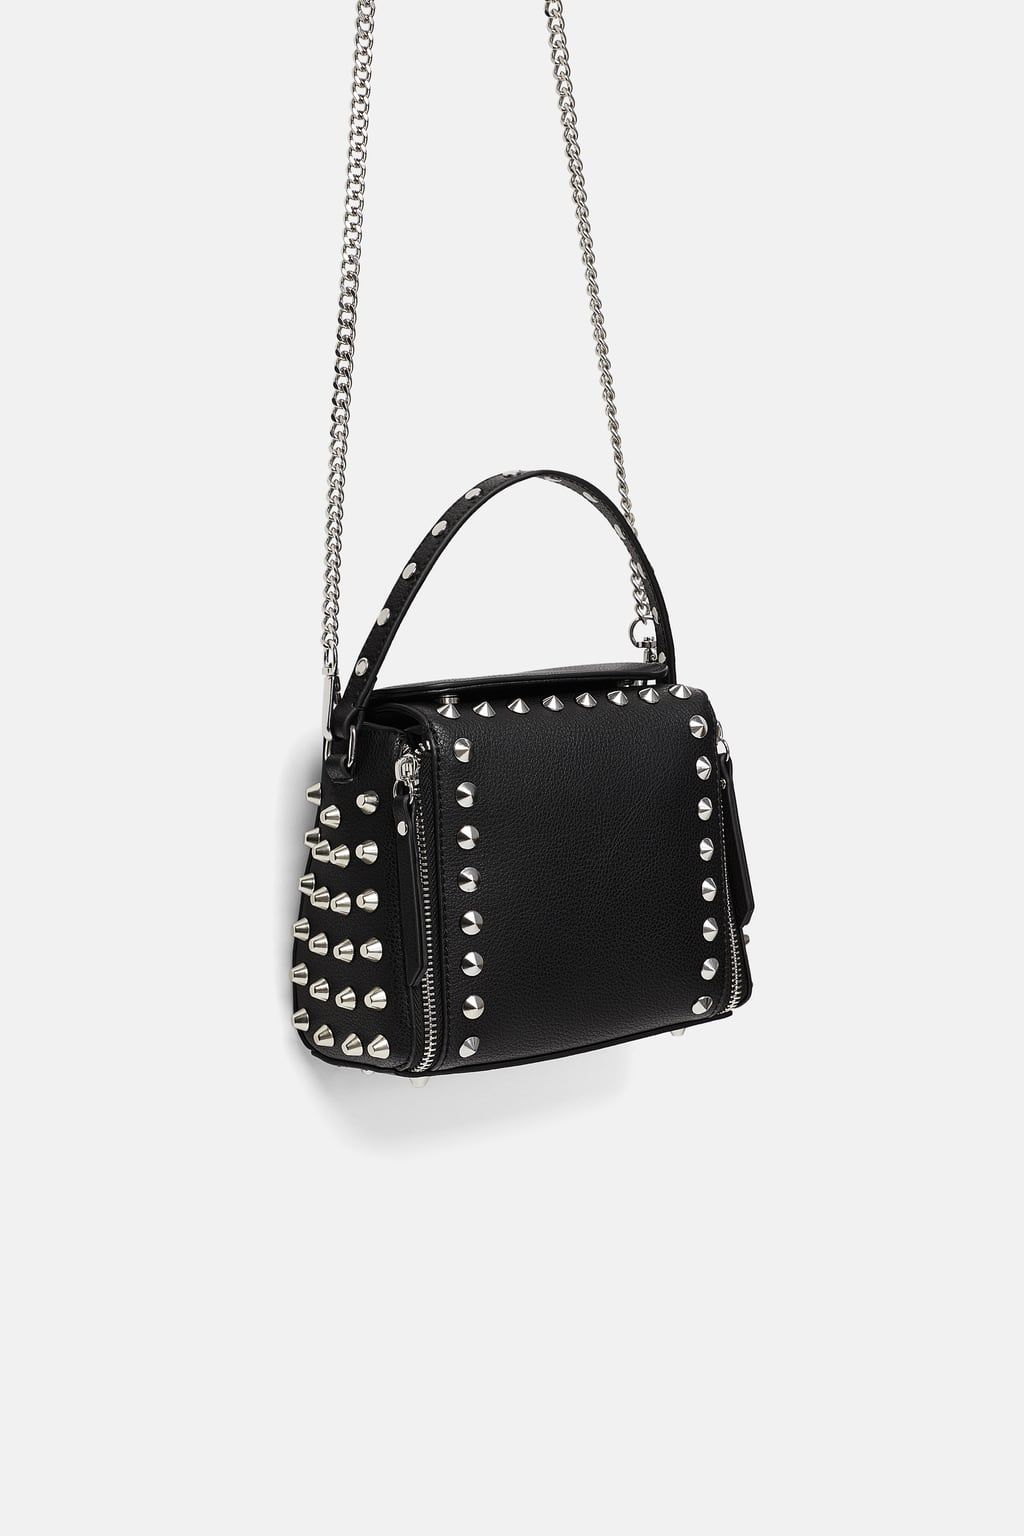 7996288b4c2930 Rocker crossbody bag in 2019 | Stuff to Buy | Zara bags, Bags ...